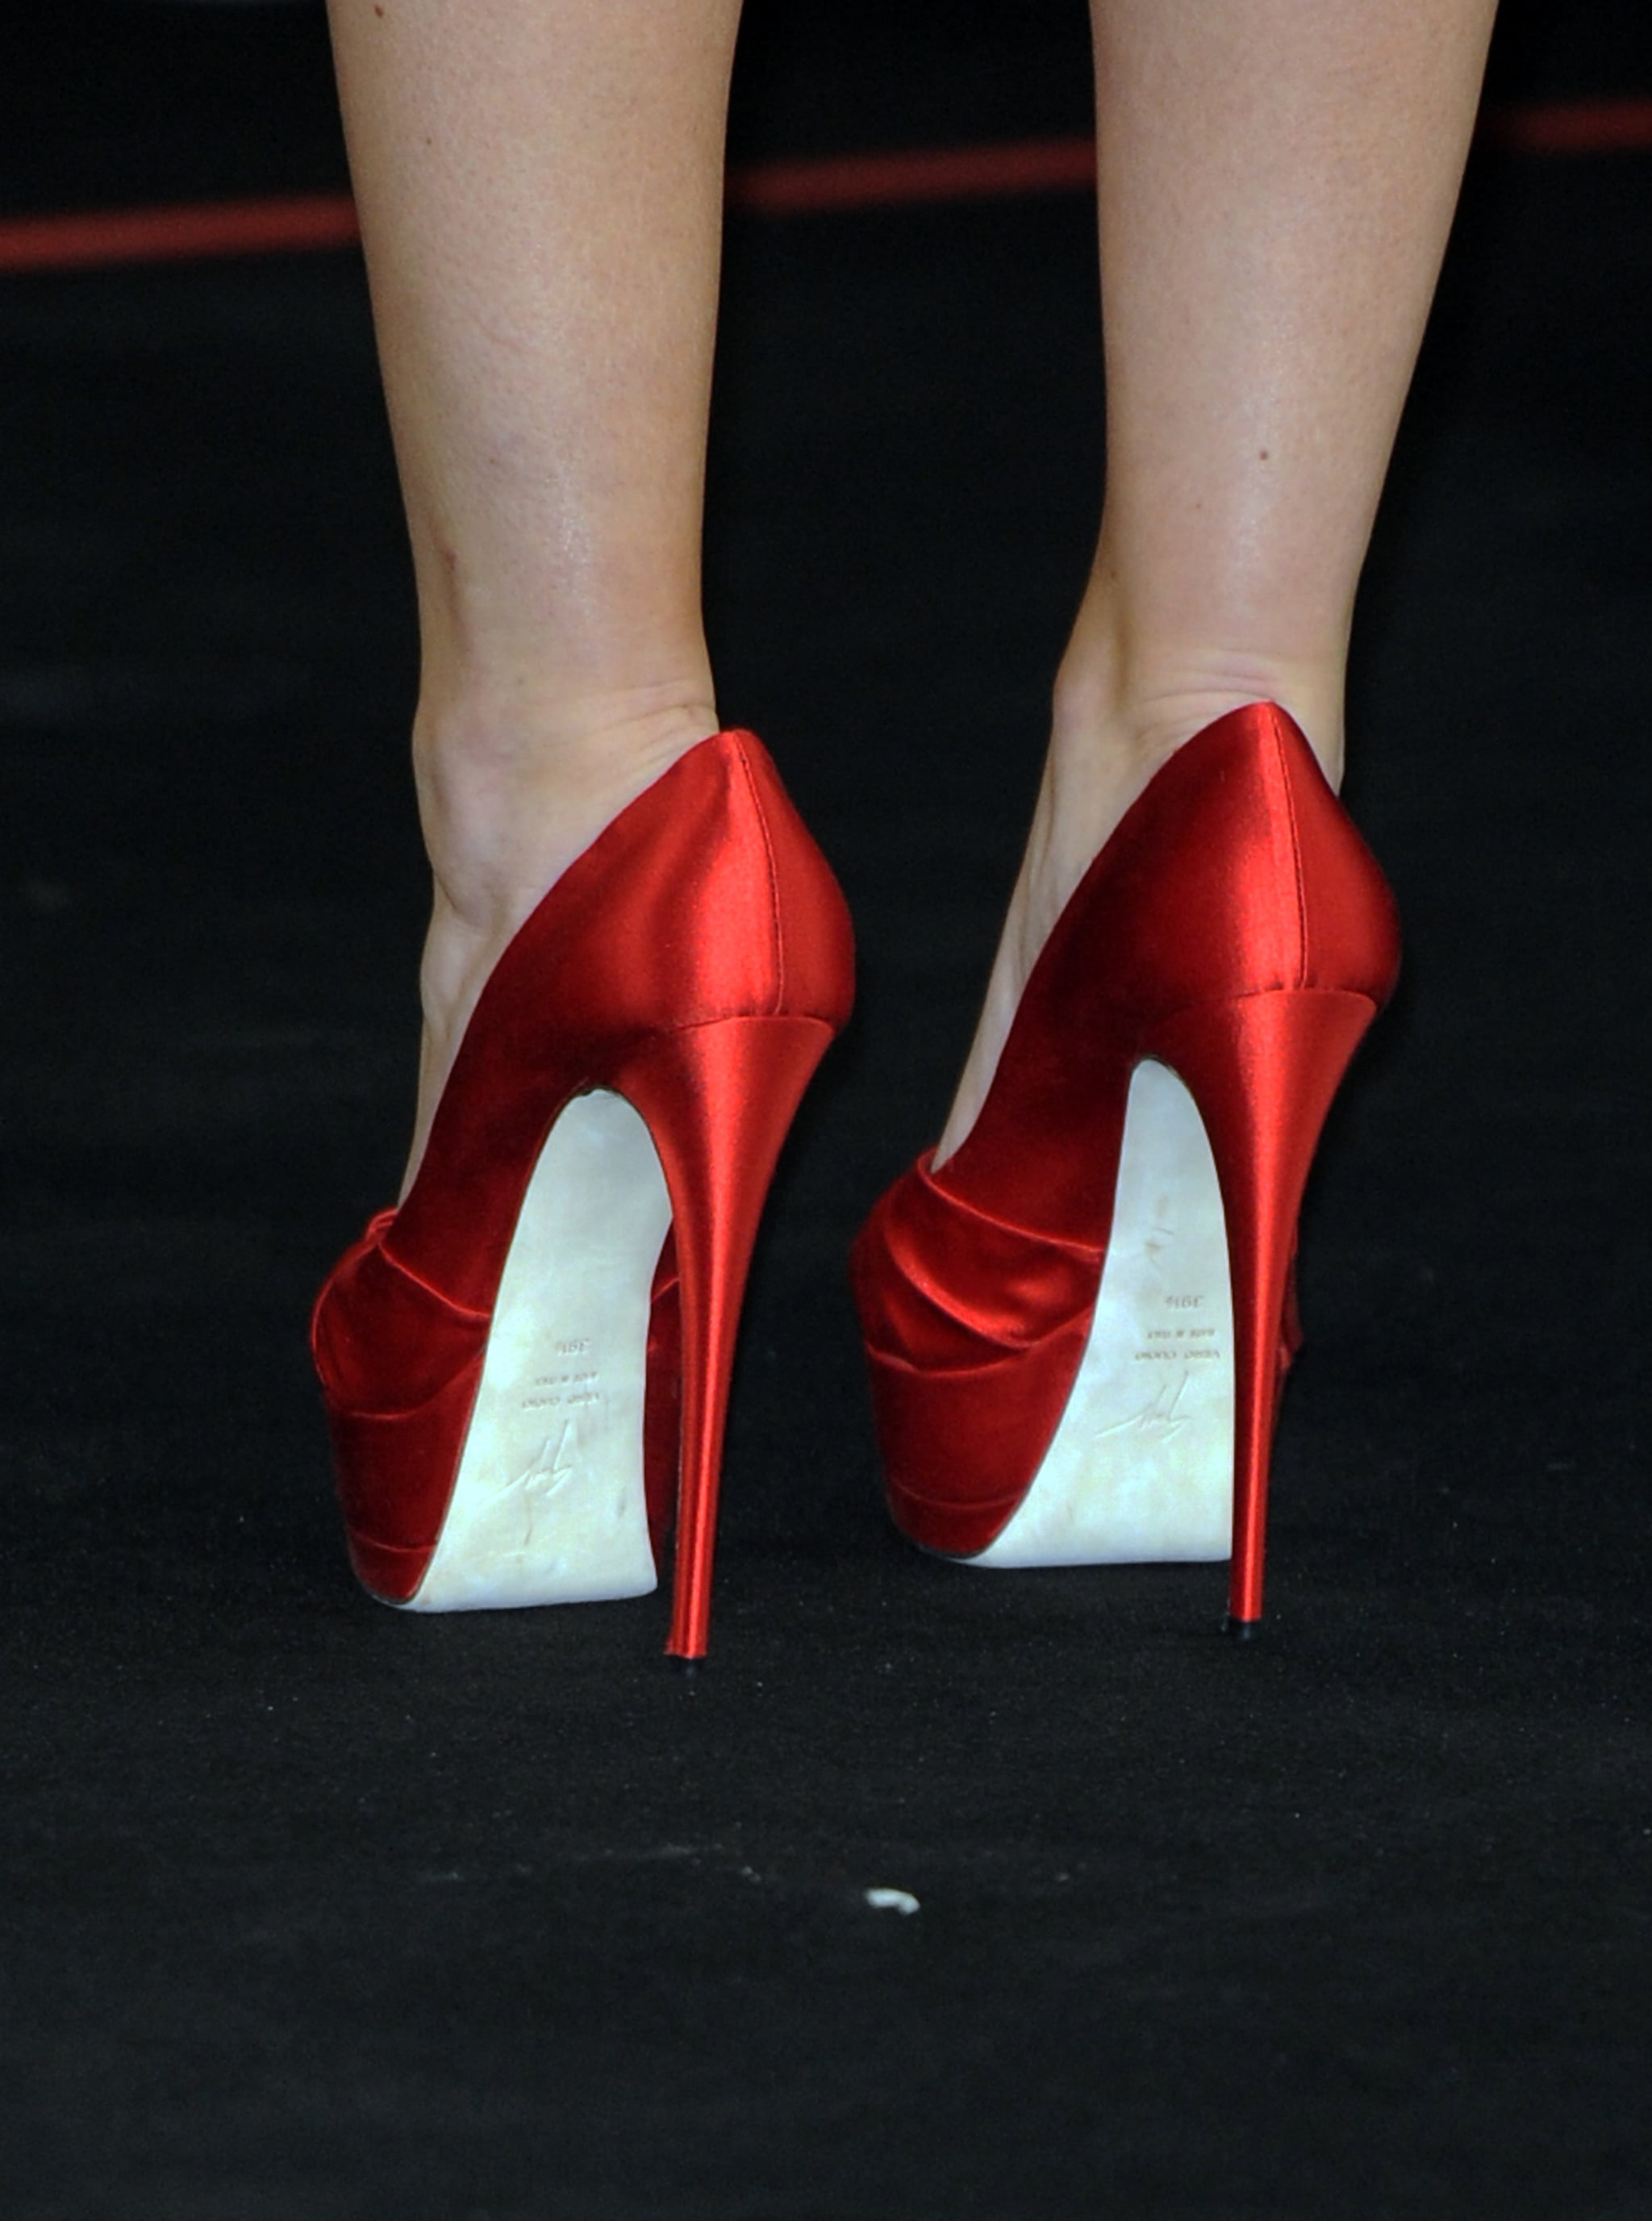 Check out those heels — the actress stepped out in sky-high Giuseppe Zanotti pumps.